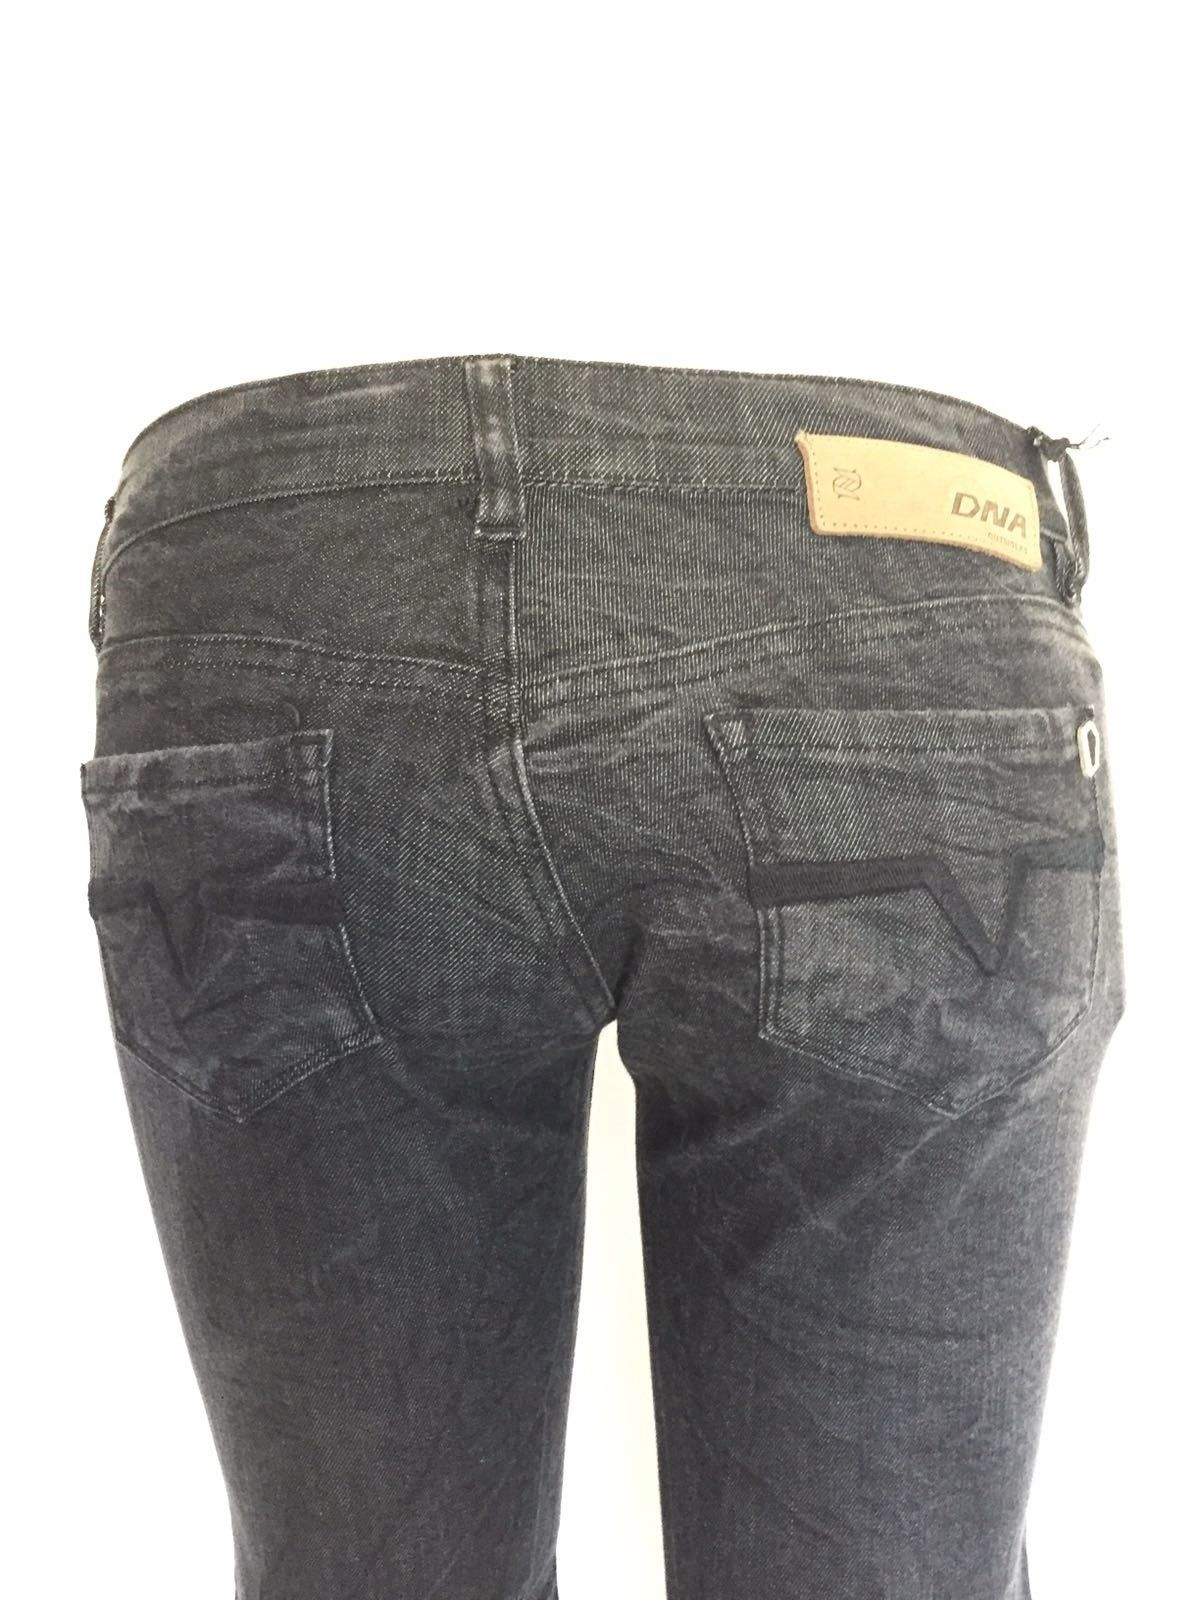 DNA 5 Pockets Stretchy Jeans Cod.CHOT12